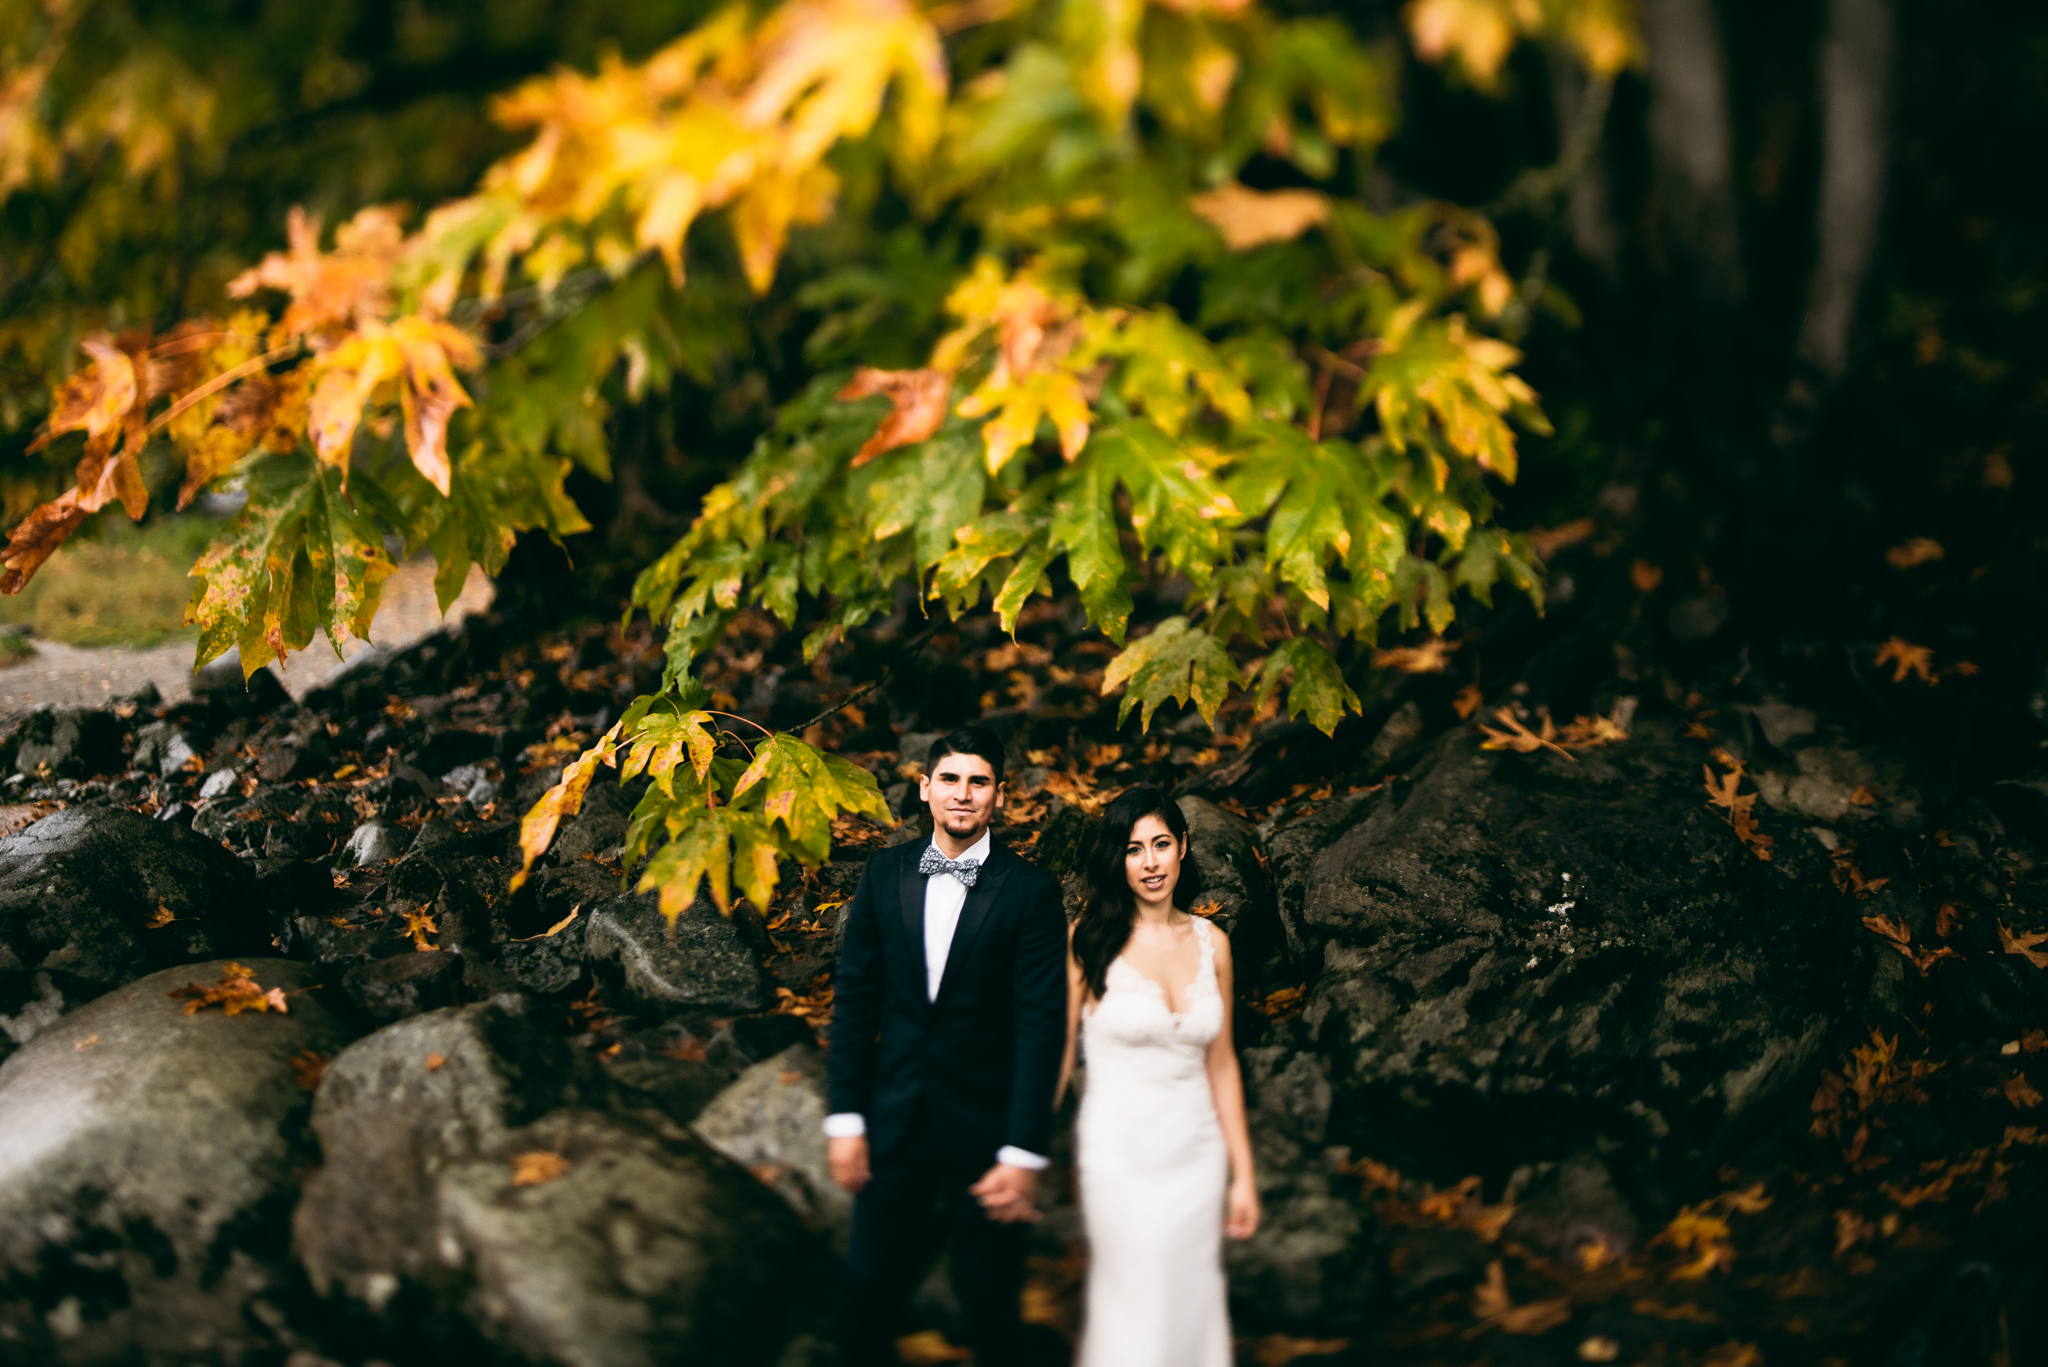 ©Isaiah & Taylor Photography - Los Angeles Wedding - Snoqualmie, Washington Honeymoon-024.jpg